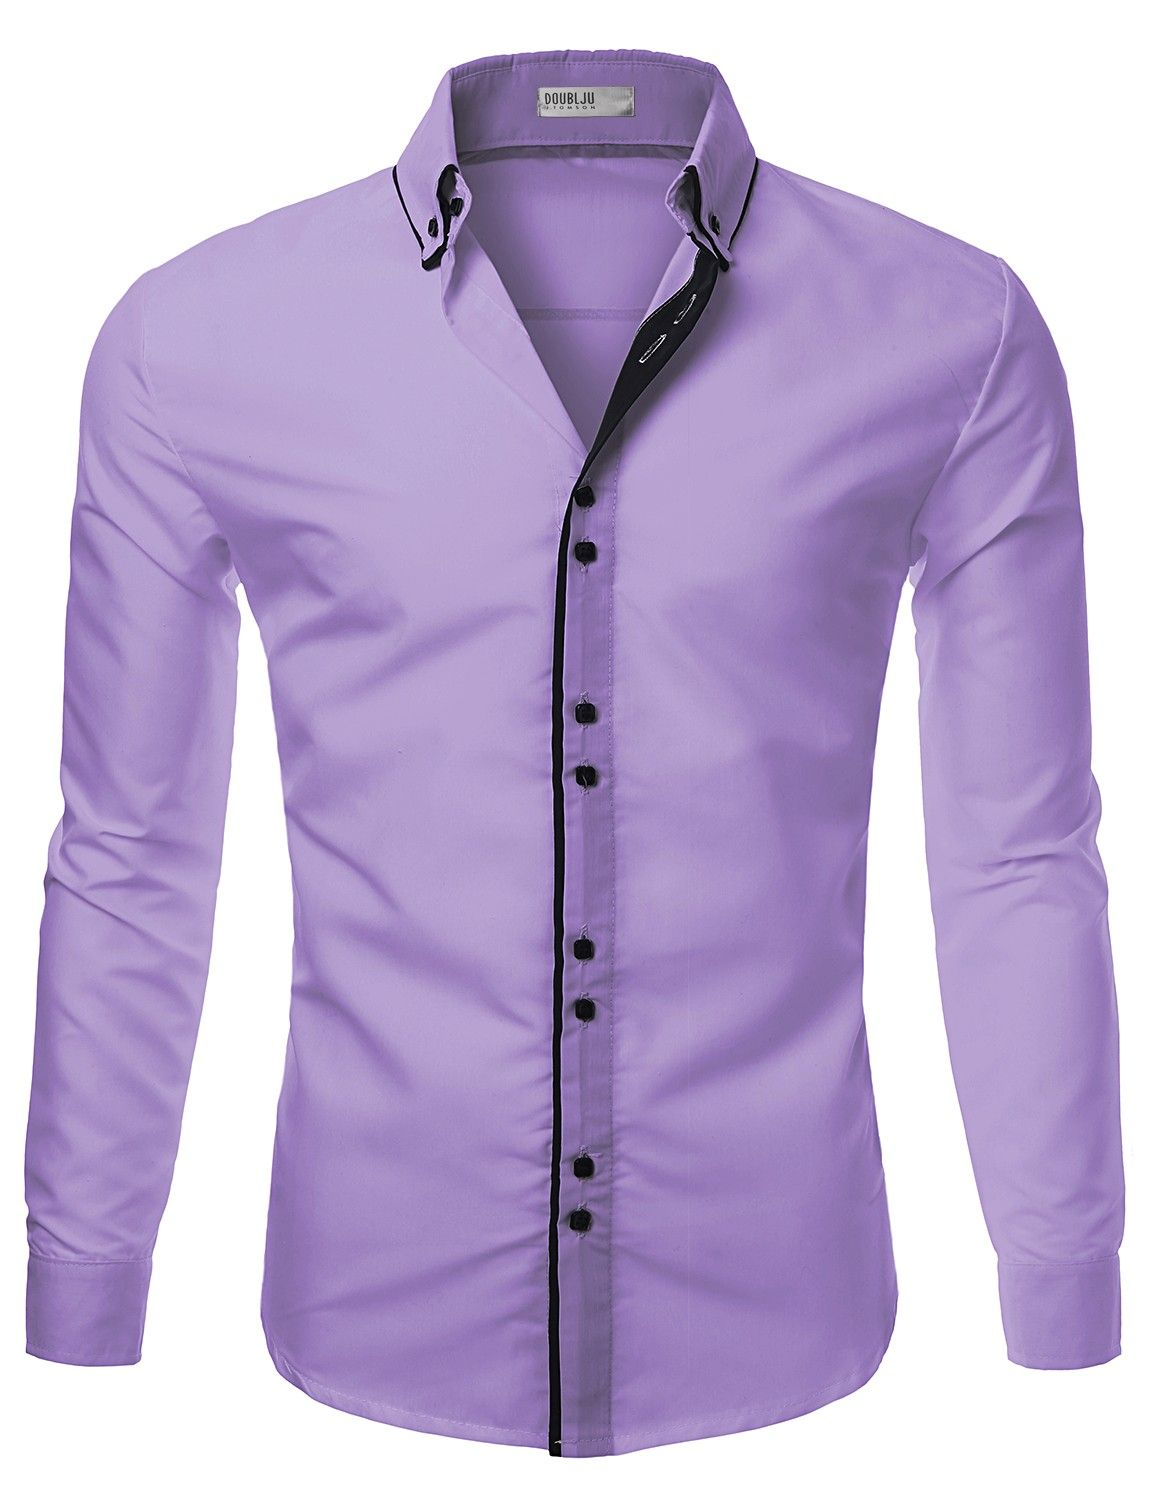 Mens casual slim fit shirts with square button doublju long